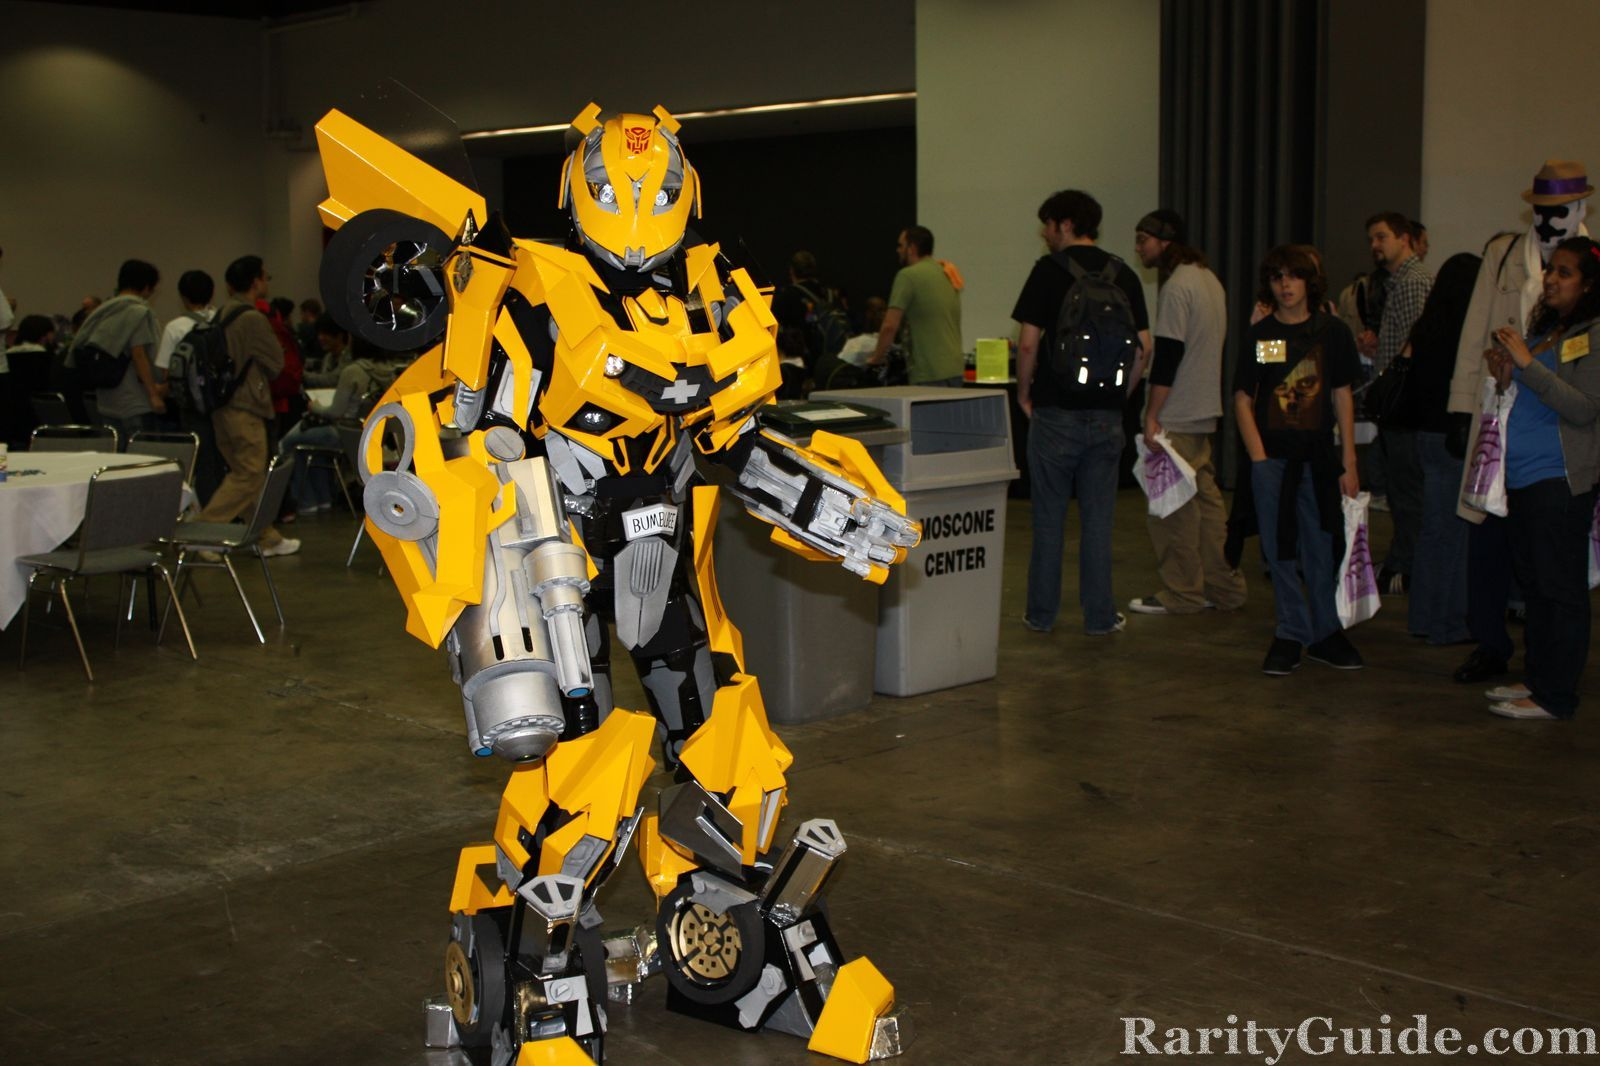 Bumble Bee Transformer Costume you think of this costume